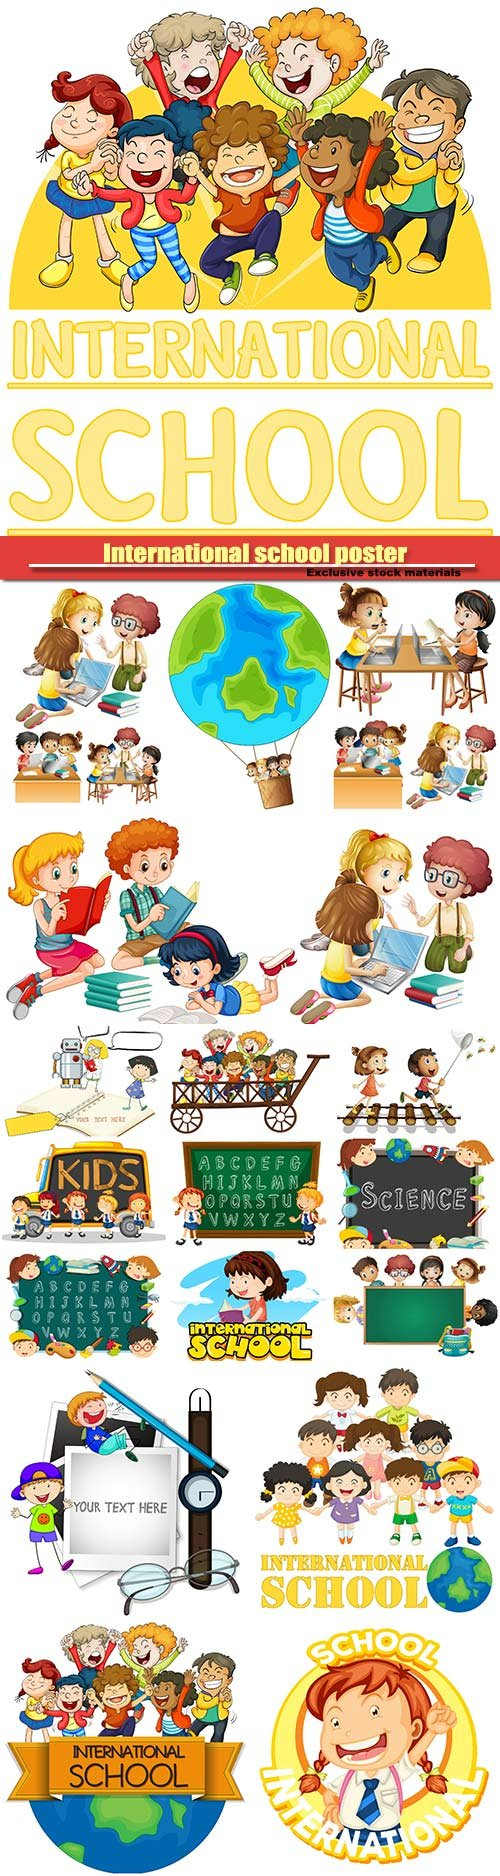 Frame template with boy and girl, international school poster with many children